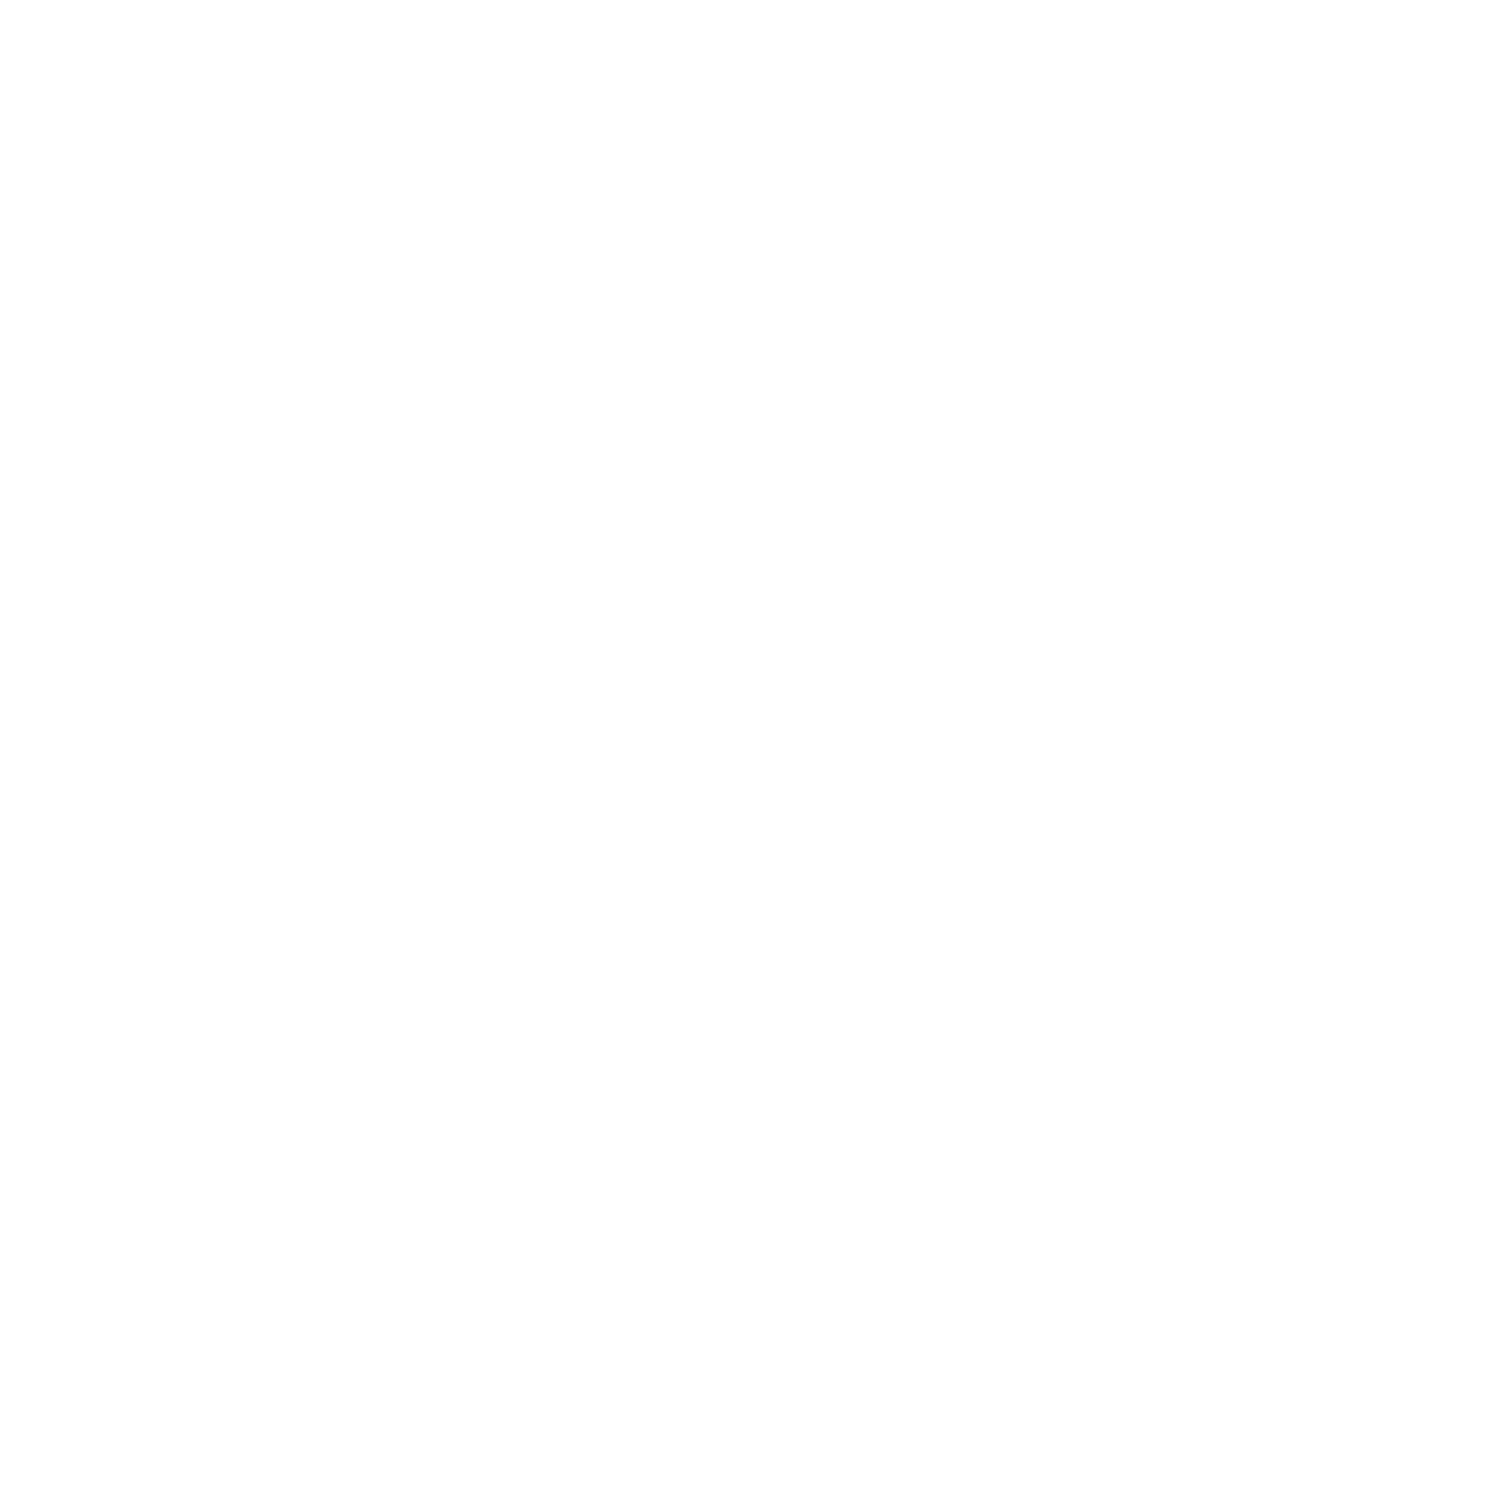 AGOK Foundation